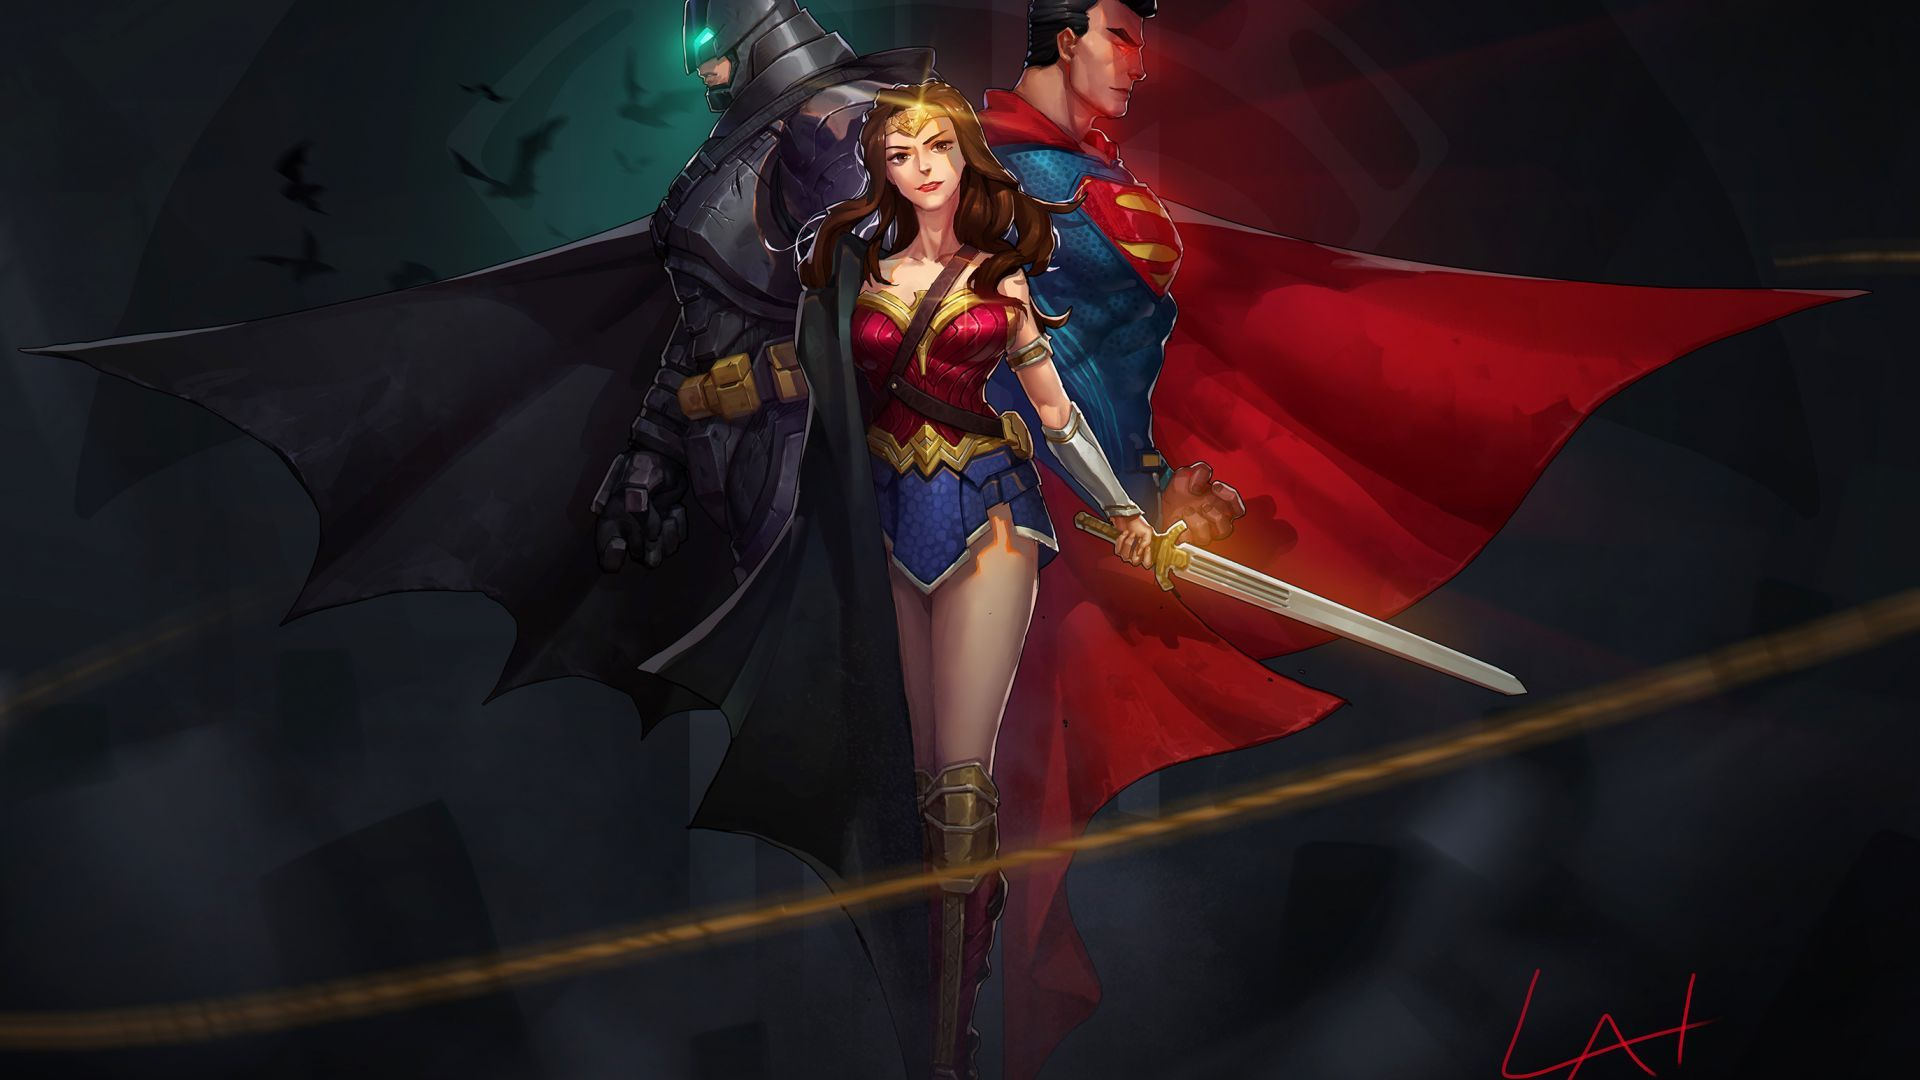 Wonder Woman Justice League 2021 Wallpapers